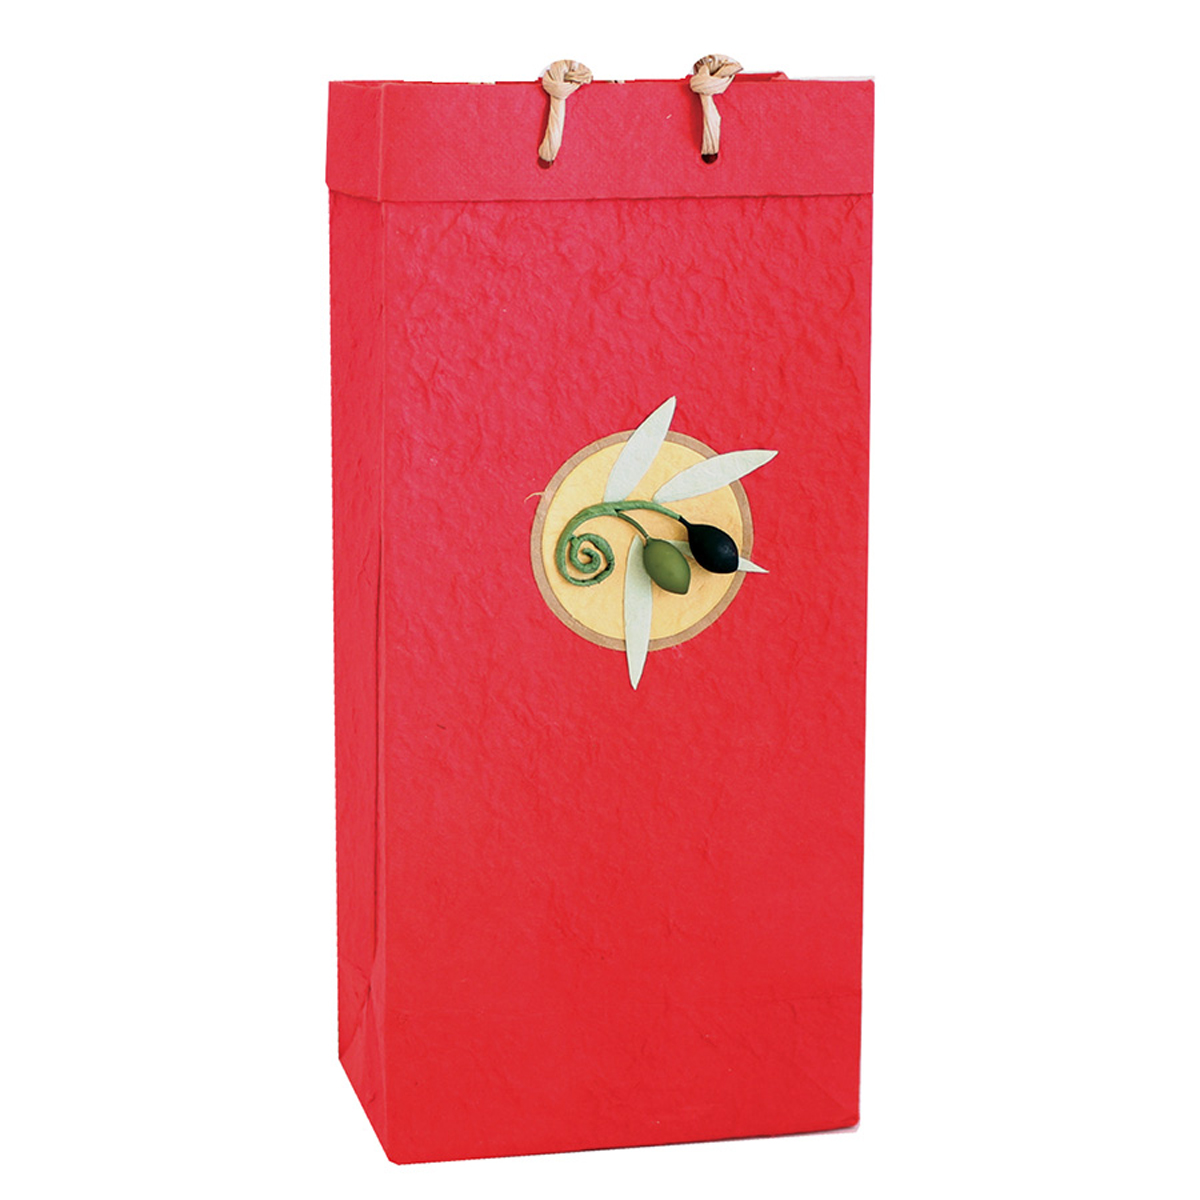 OB2 Castilla Red - Handmade Paper 2 Bottle Olive Oil Bags